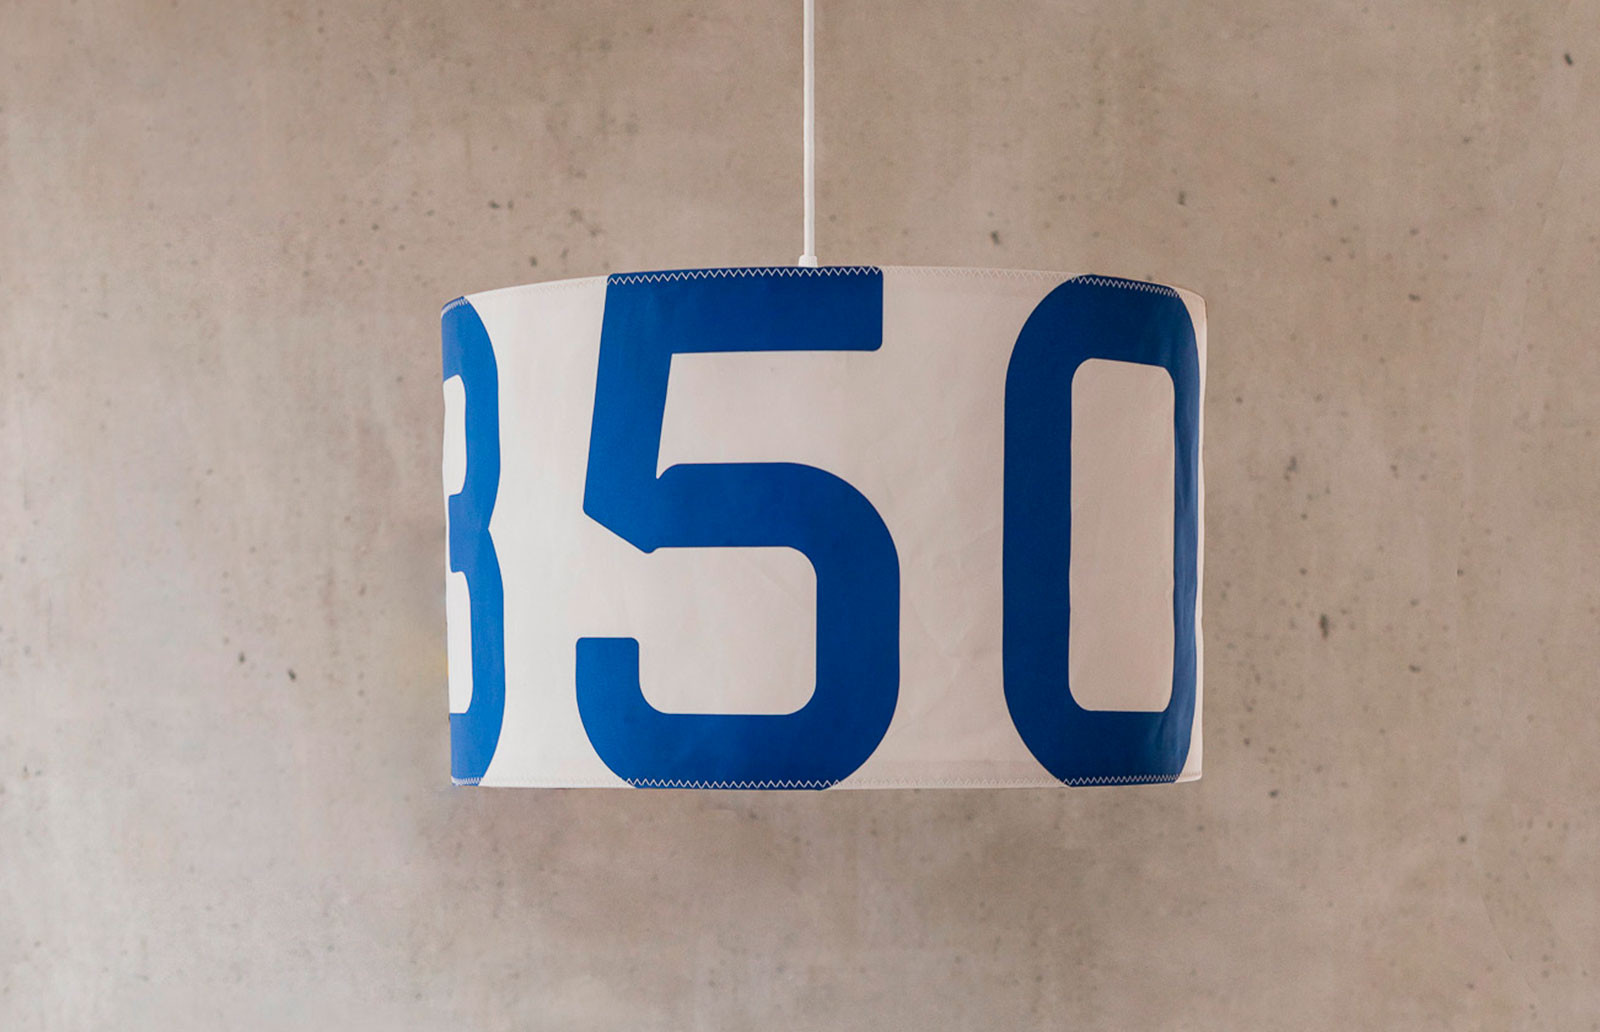 727Sailbags suspended lamp in recycled sailcloth